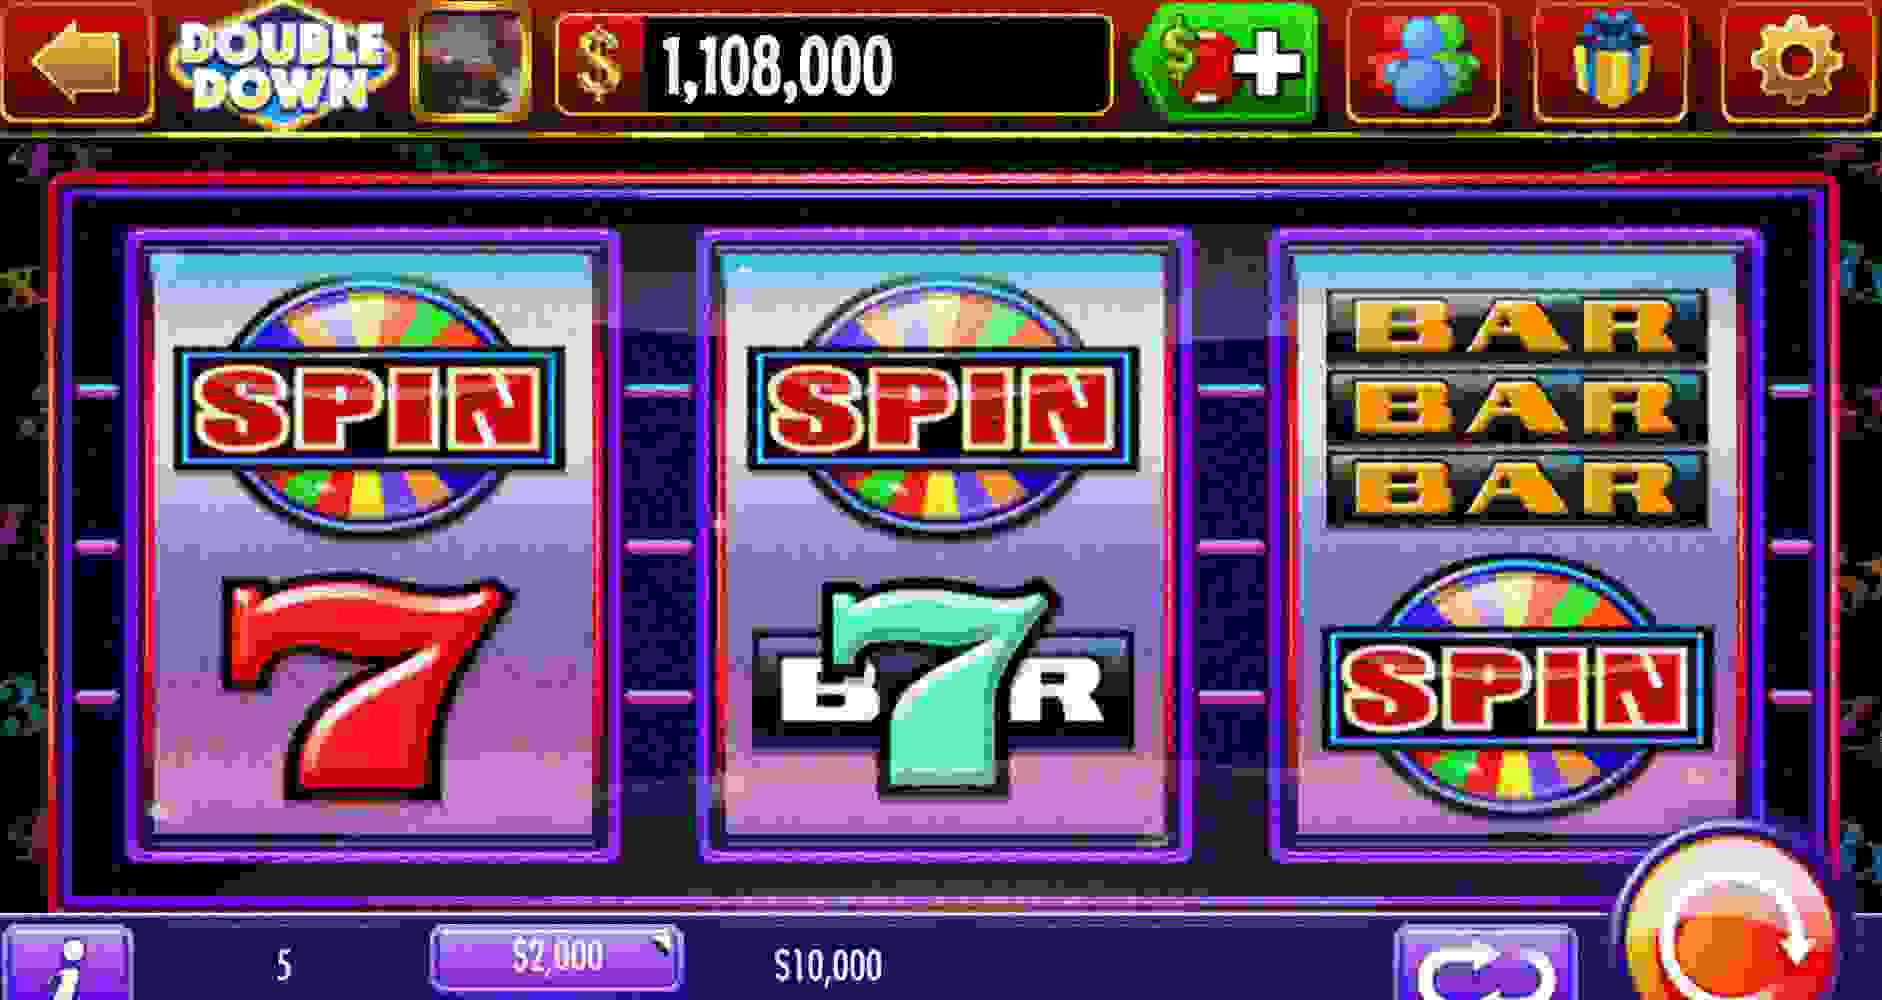 doubledown casino free slots on facebook